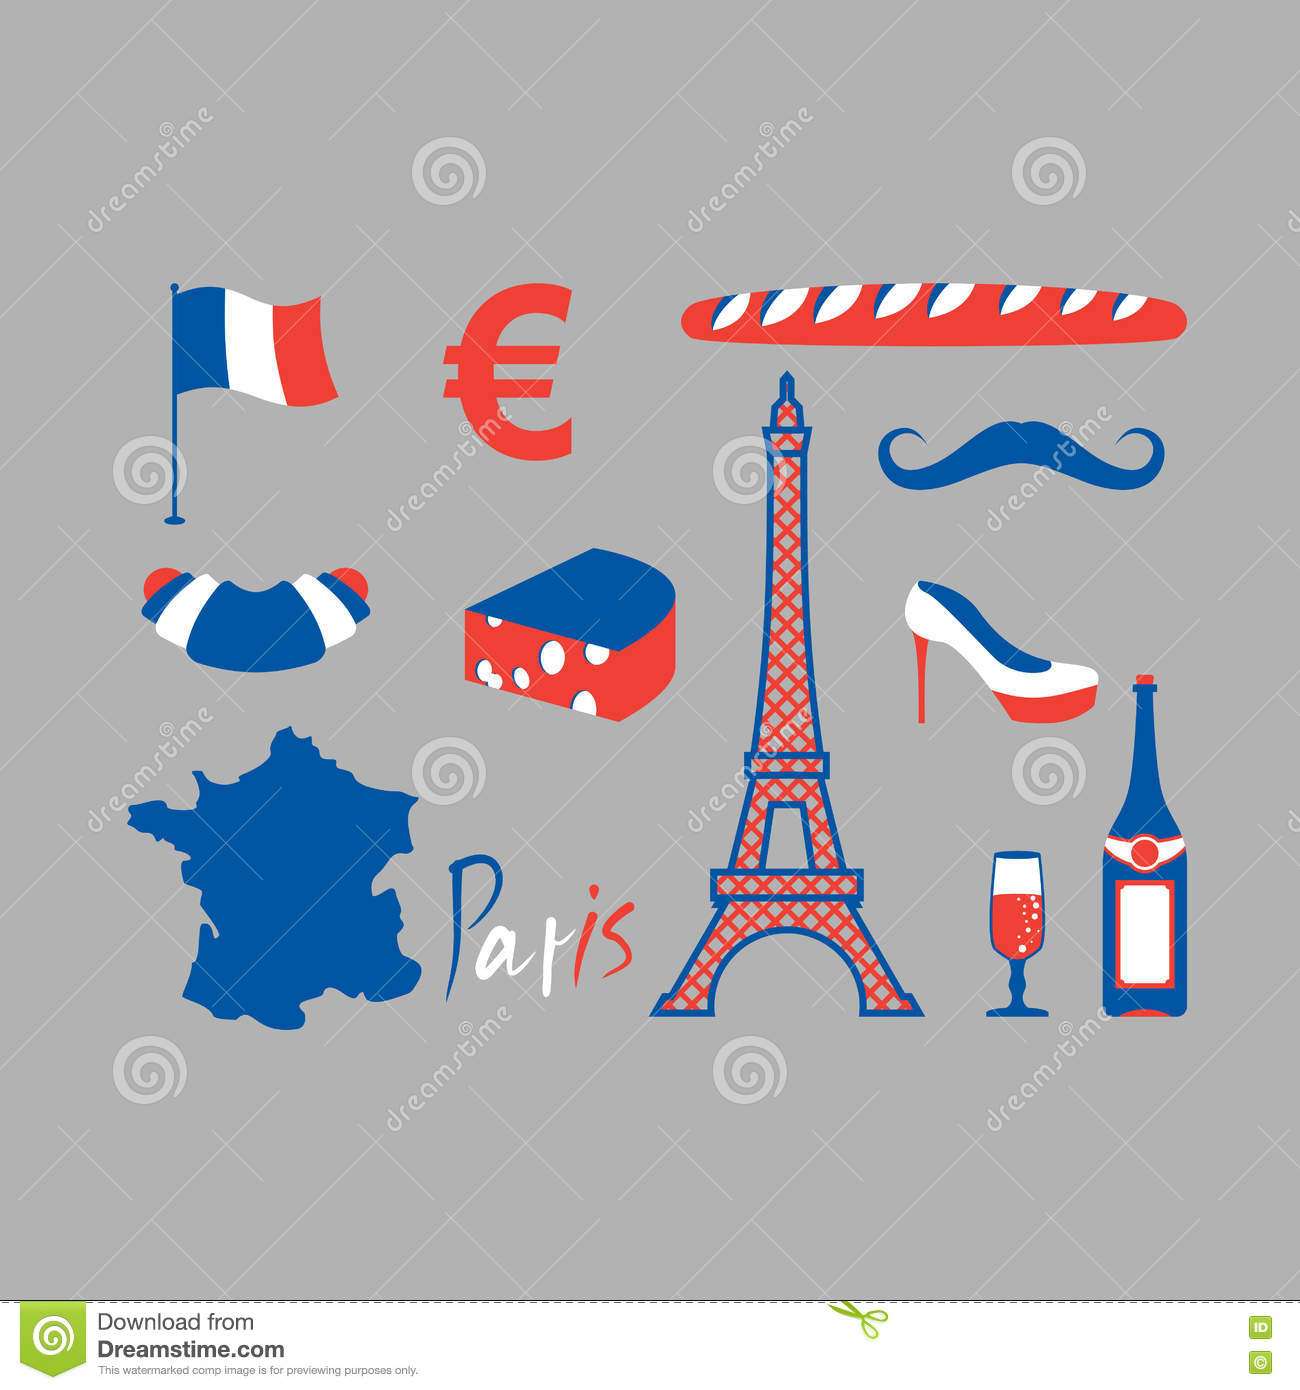 Icons symbols of france eiffel tower and map country baguette traditional french national symbols eiffel tow royalty free stock photos biocorpaavc